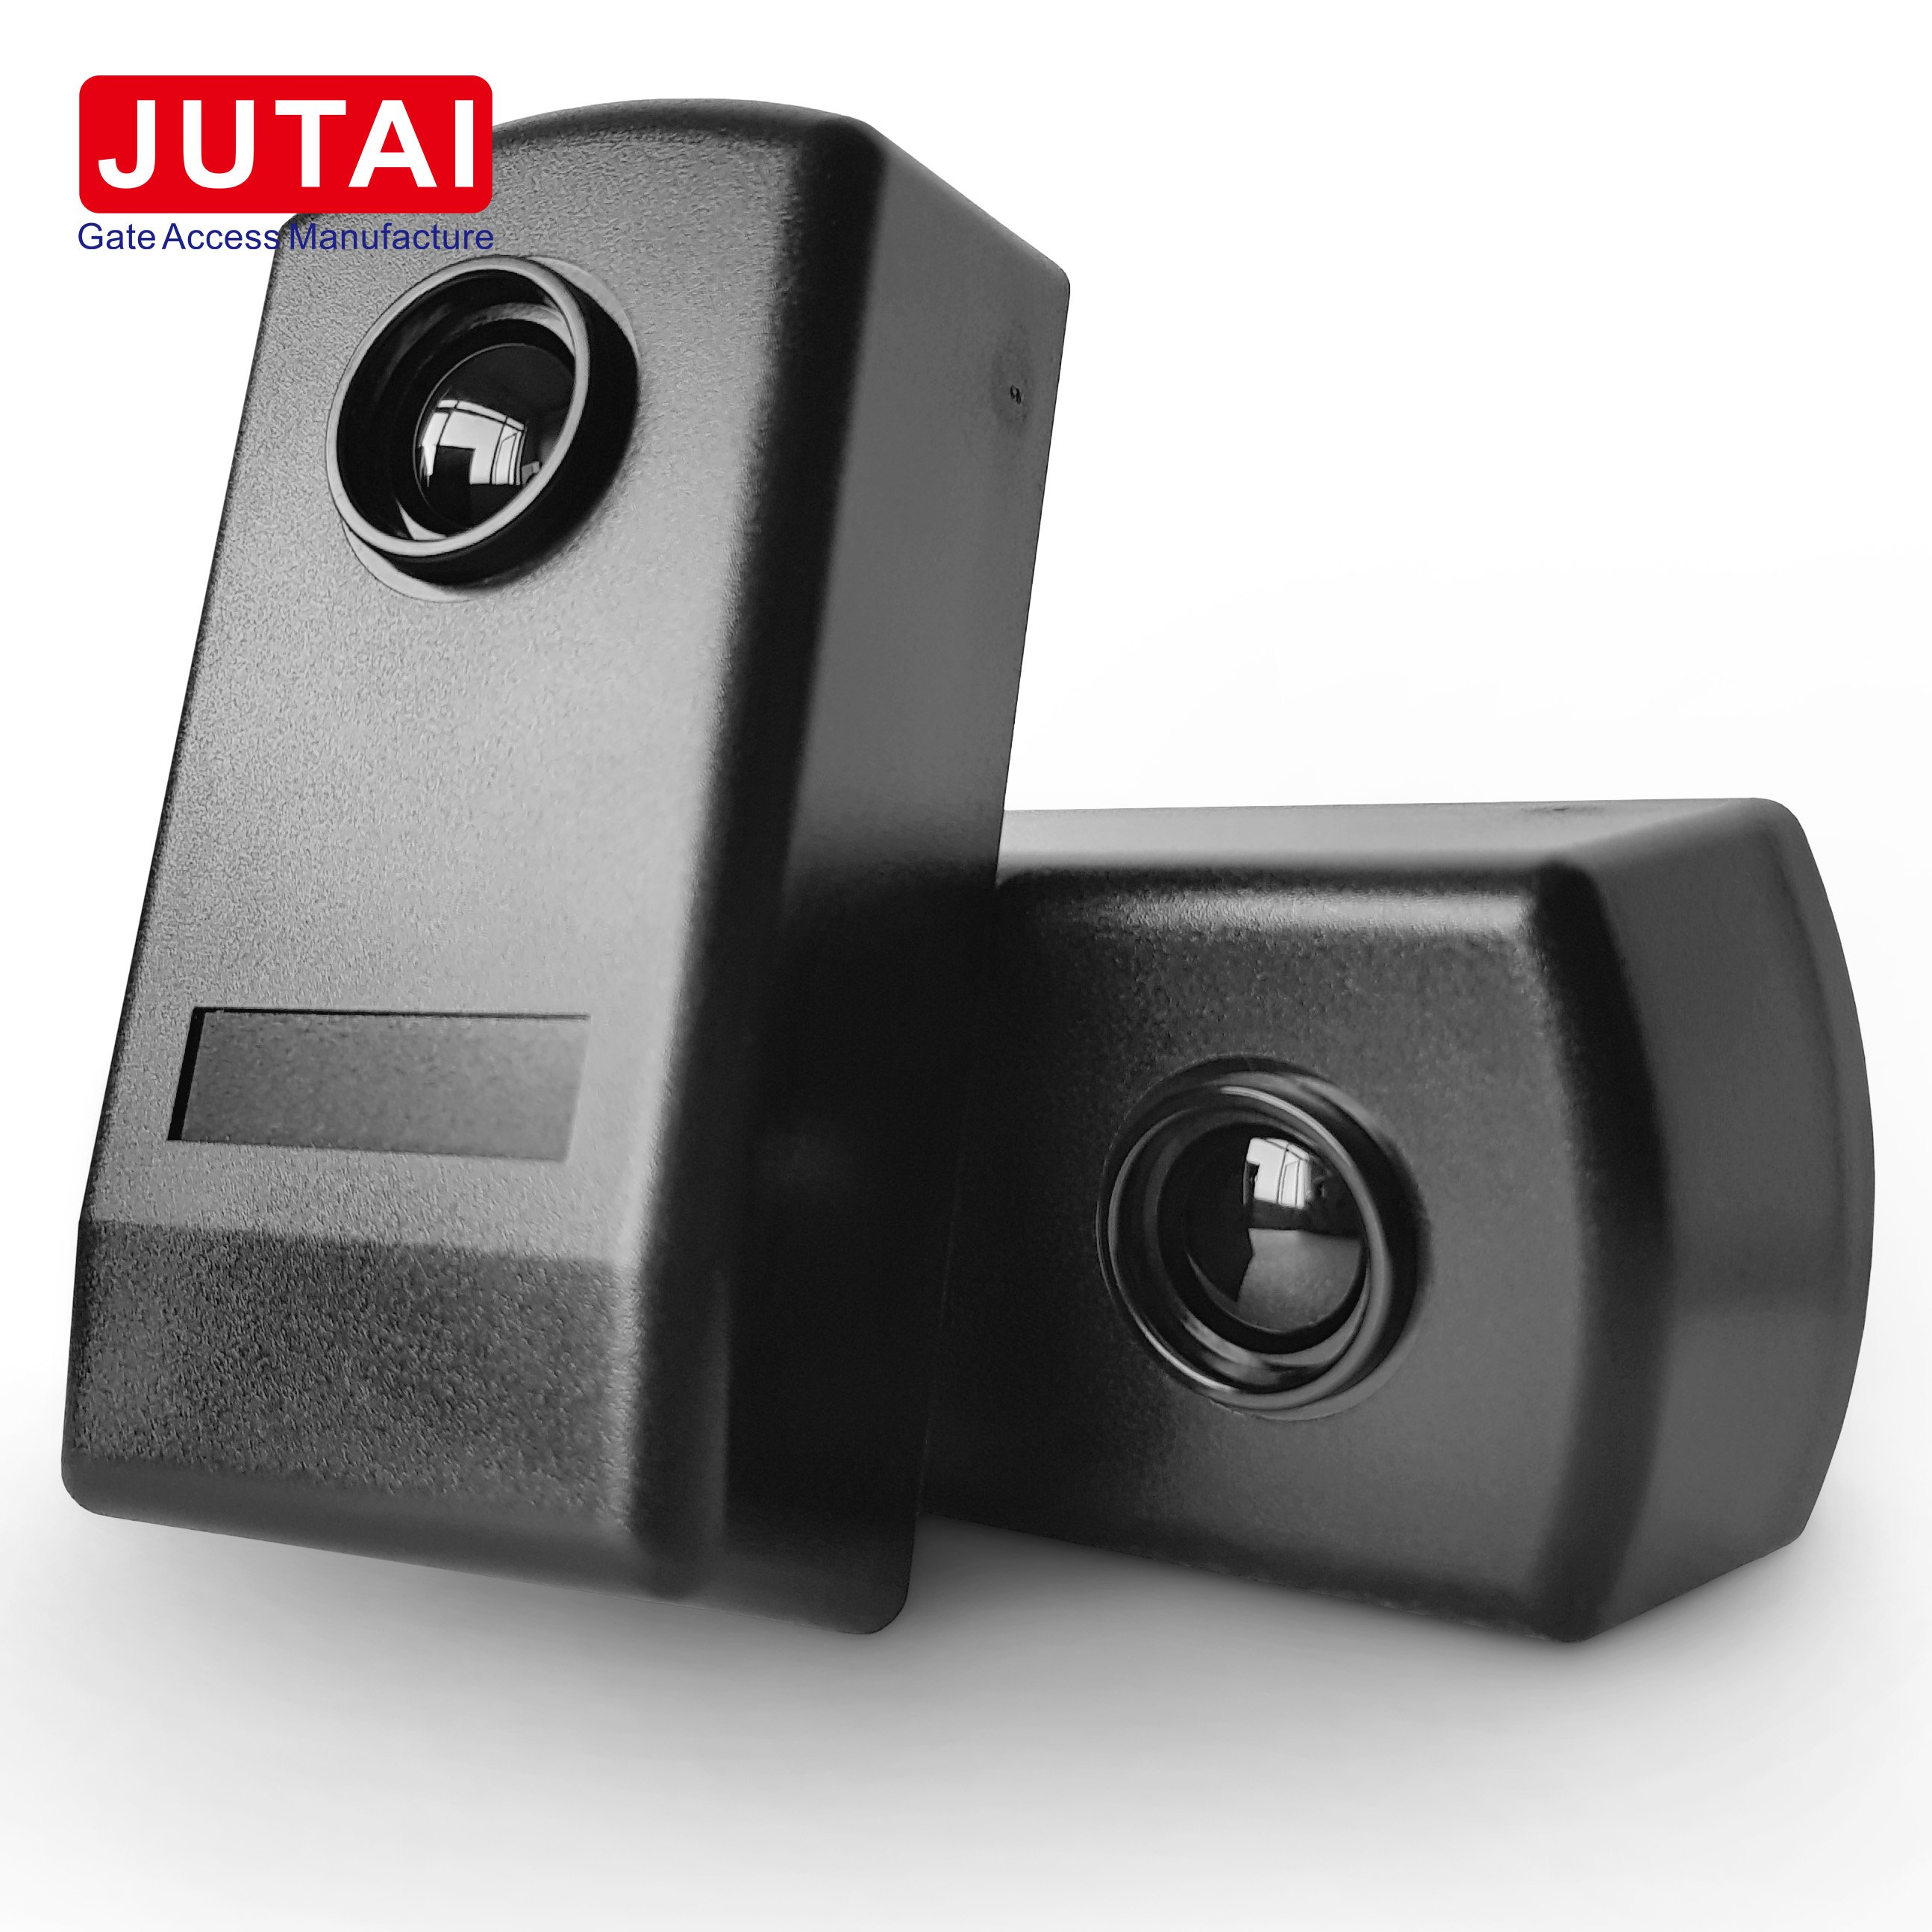 Infrared Photocell Sensor For Automatic Gate Access Safe Detection System